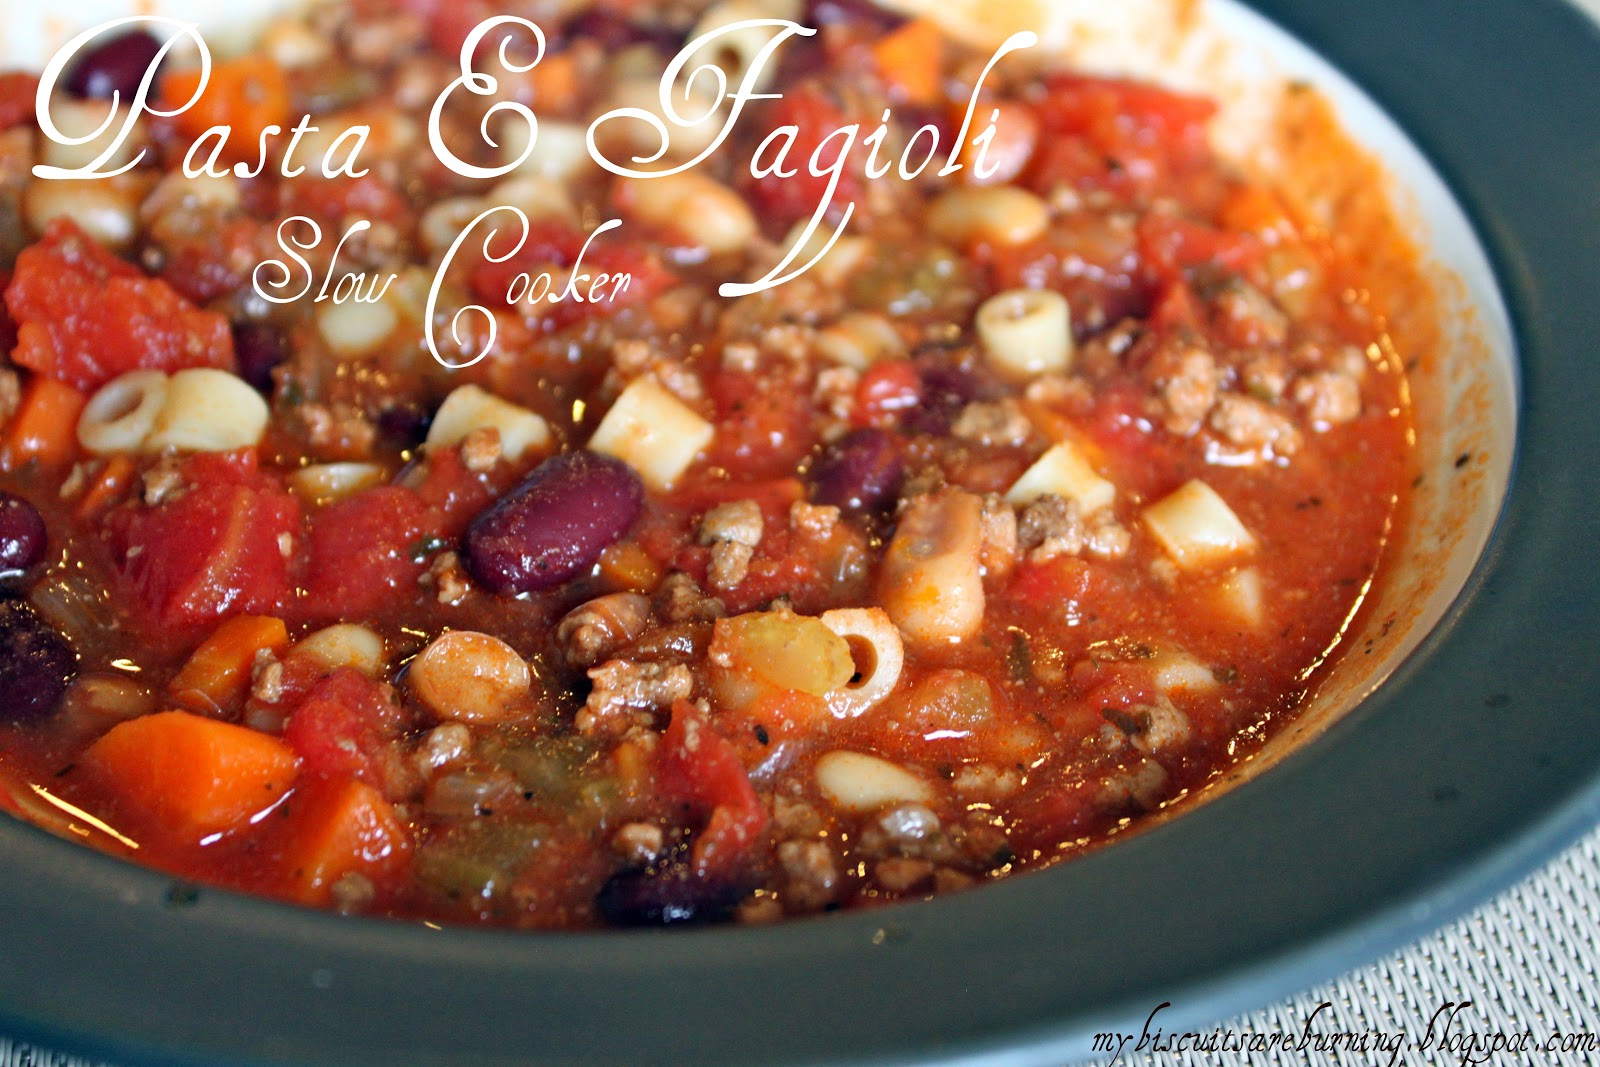 My Biscuits are Burning: Pasta E Fagioli (Slow Cooker)